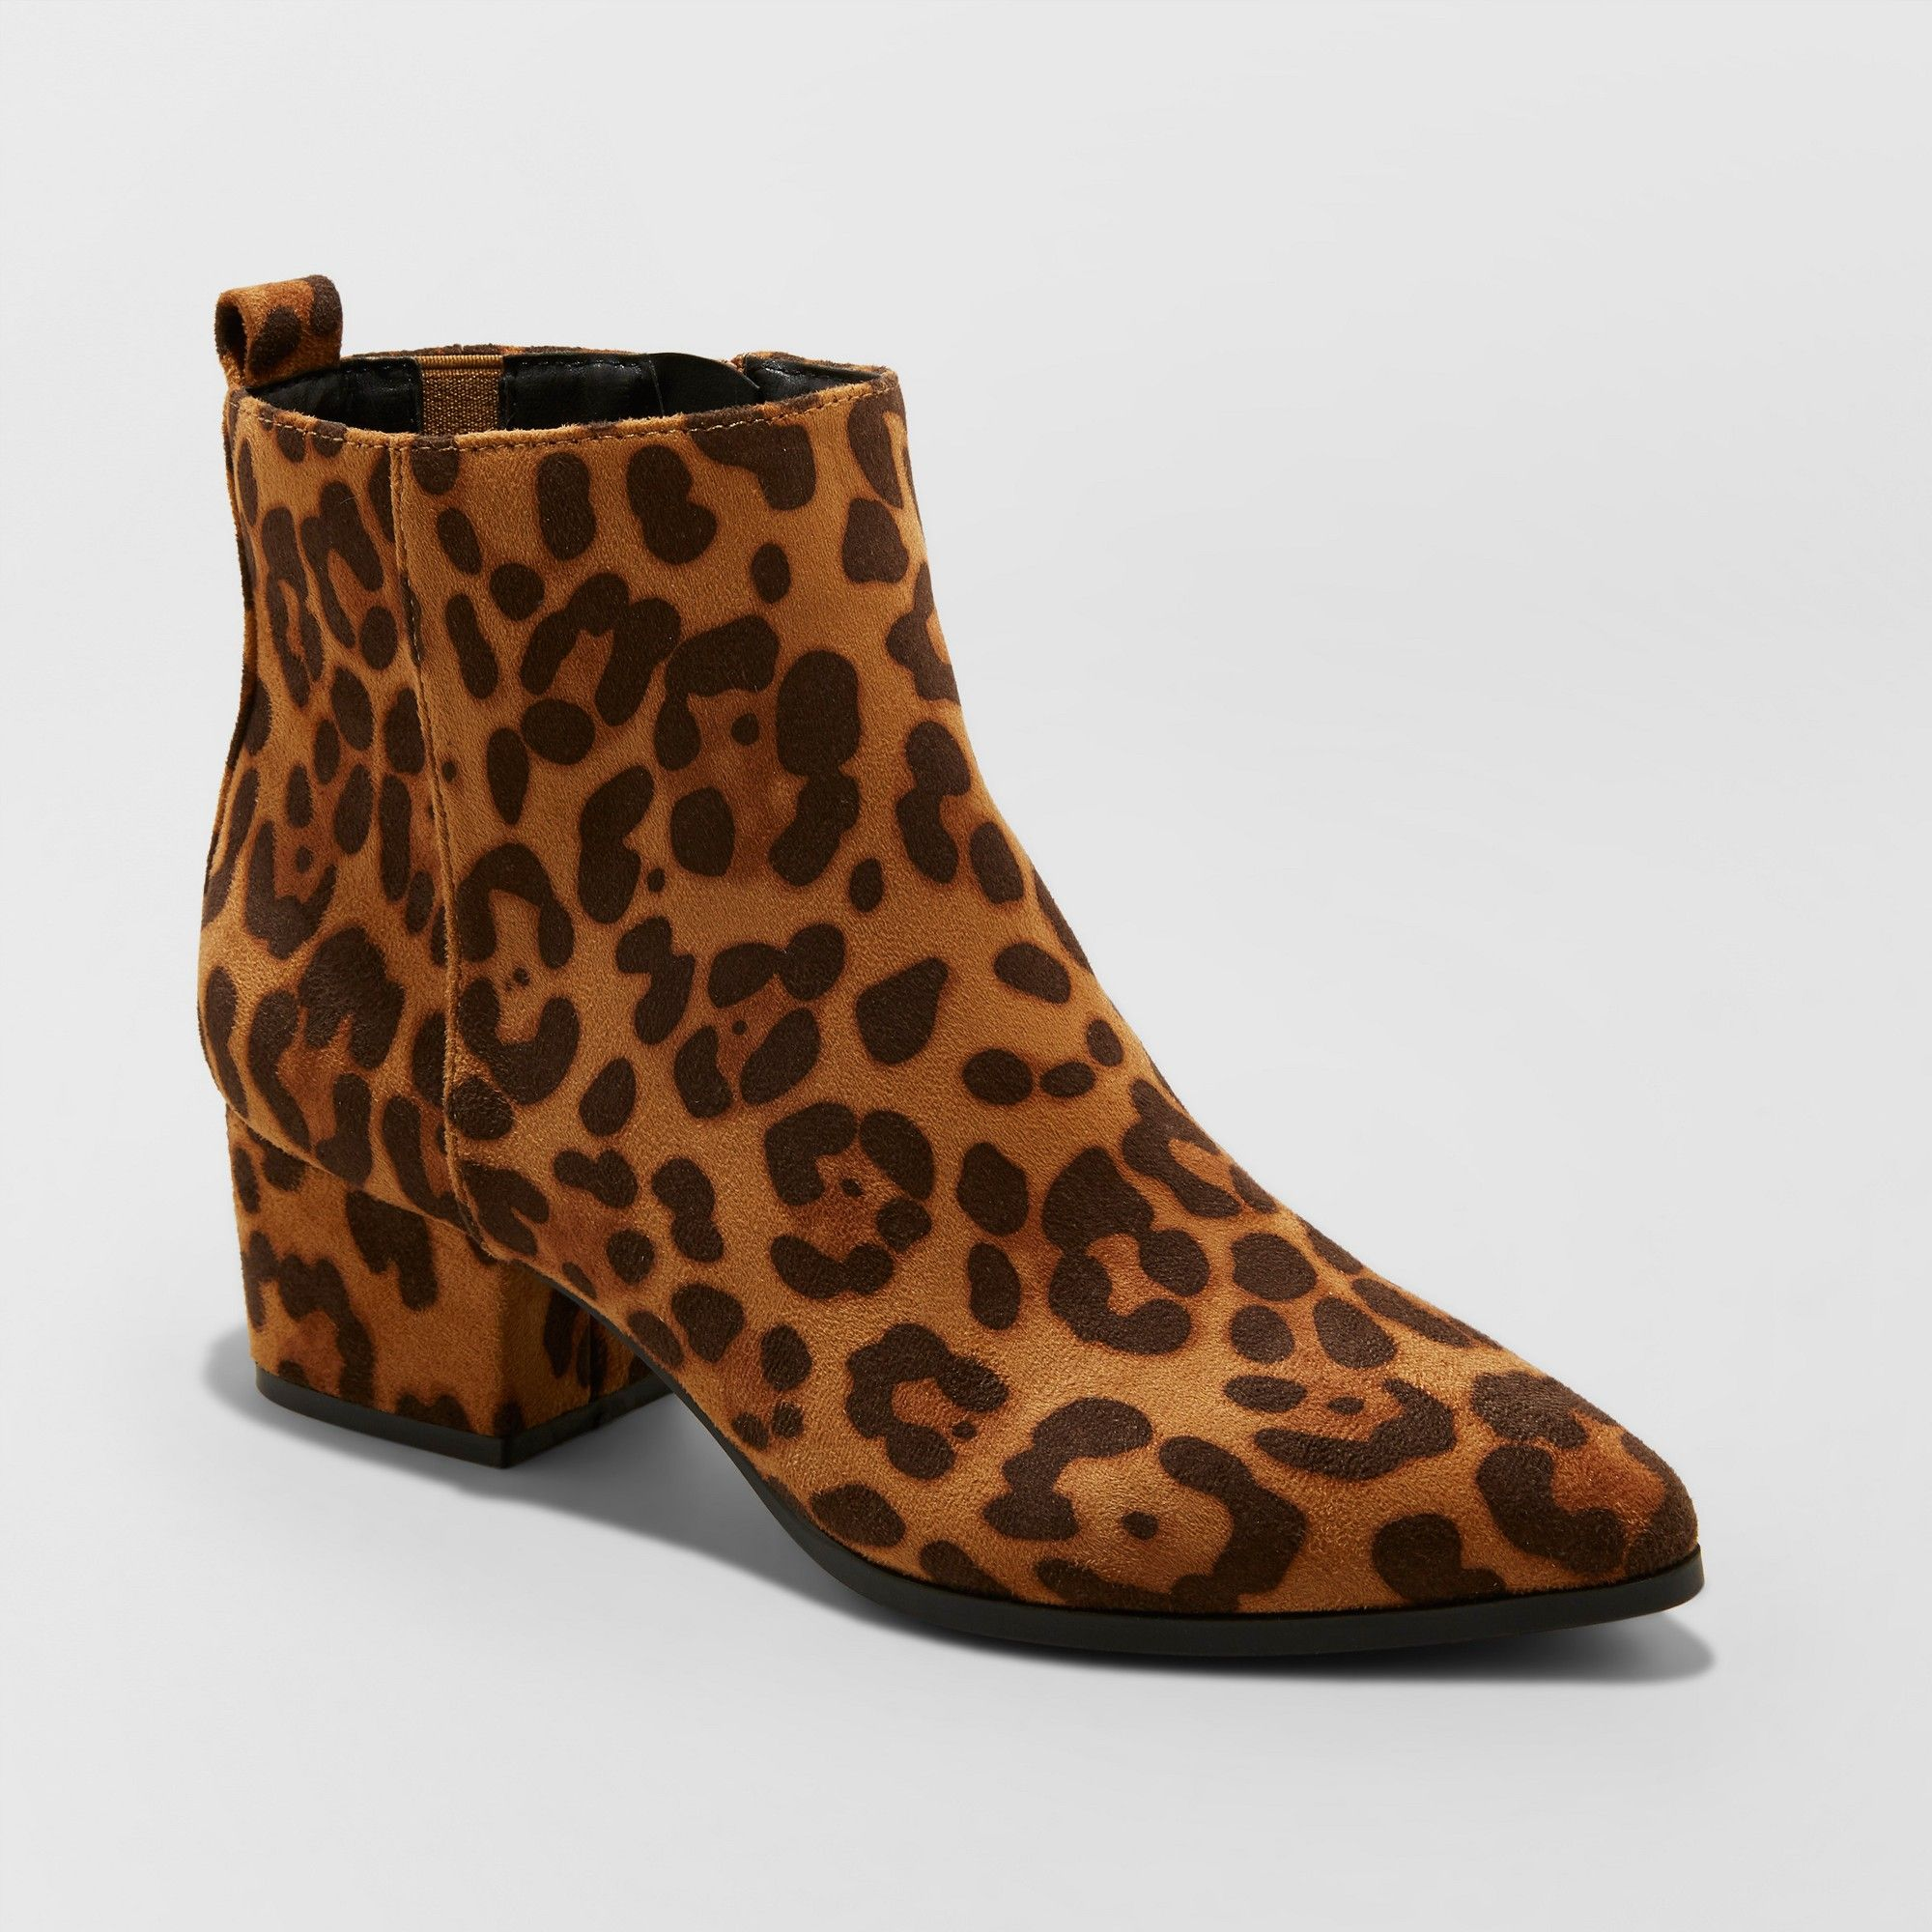 341a955680c8 Women's Valerie Microsude Leopard Print Wide Width City Ankle Fashion Boots  - A New Day 5W